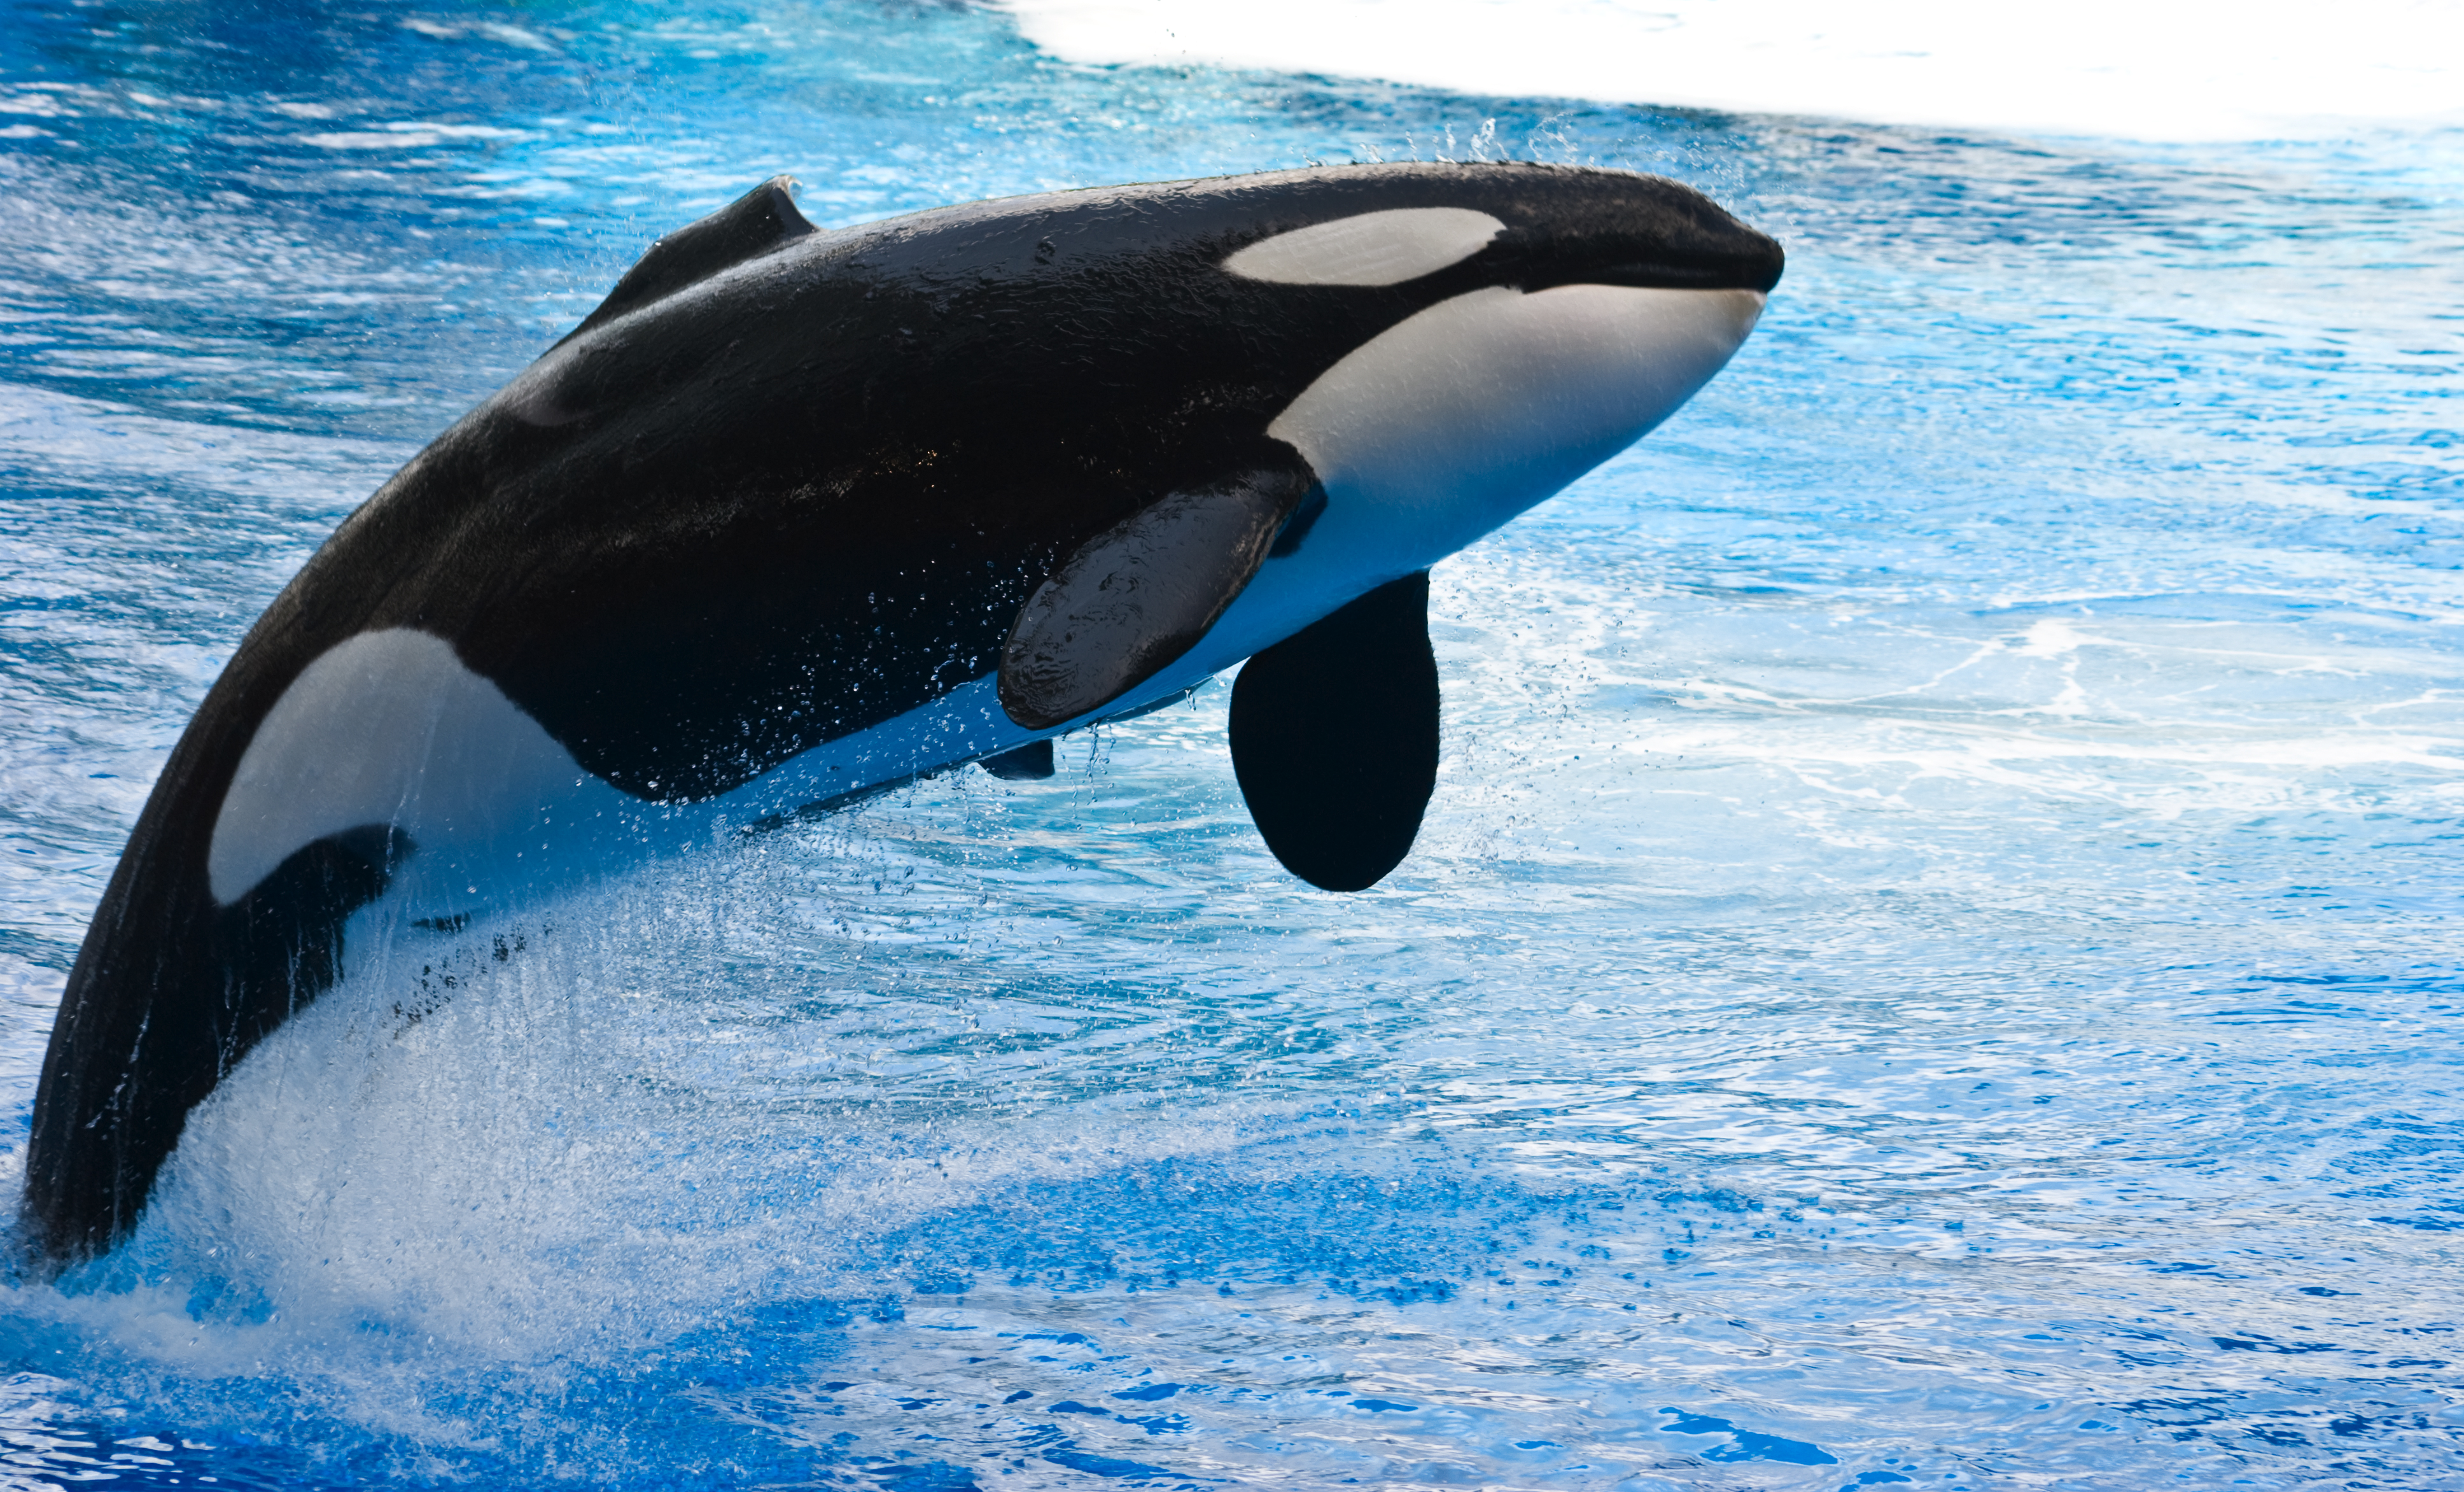 HQ Orca Wallpapers | File 6886.57Kb